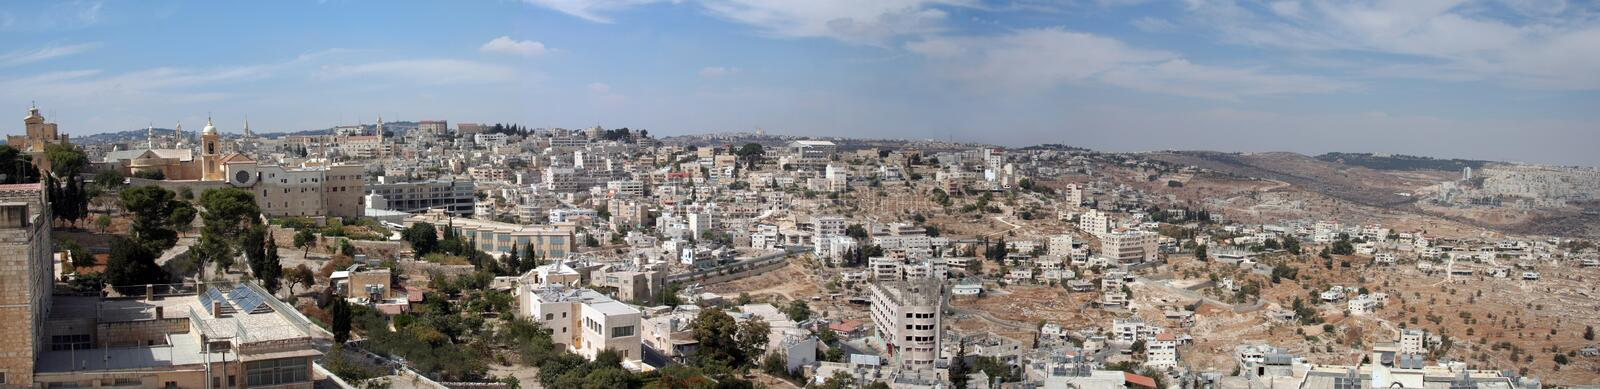 Panorama of Bethlehem royalty free stock photography